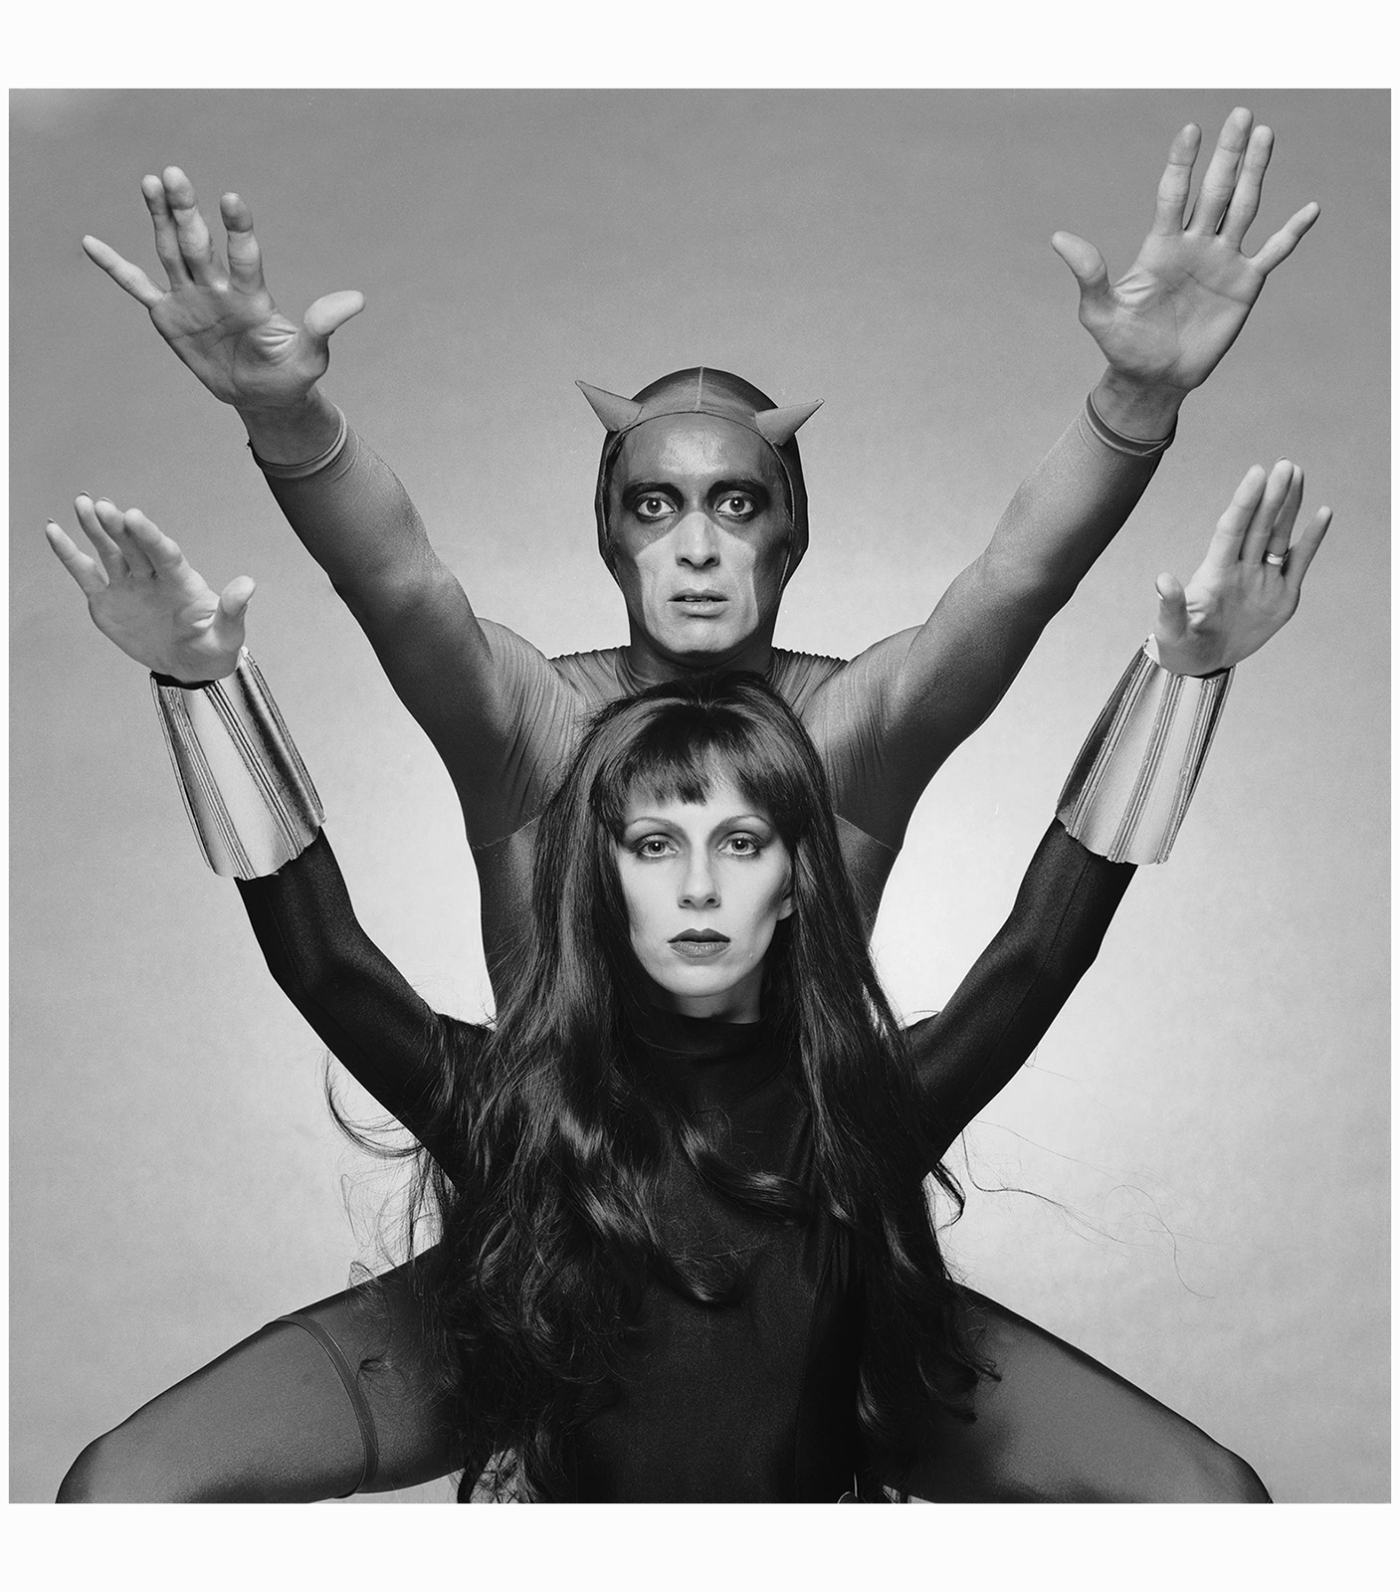 PONGA LO QUE USTED QUIERA - Página 11 Angela-bowie-as-black-widow-with-actor-ben-carruthers-s-comicbook-superhero-daredevil-1975-terry-oneill